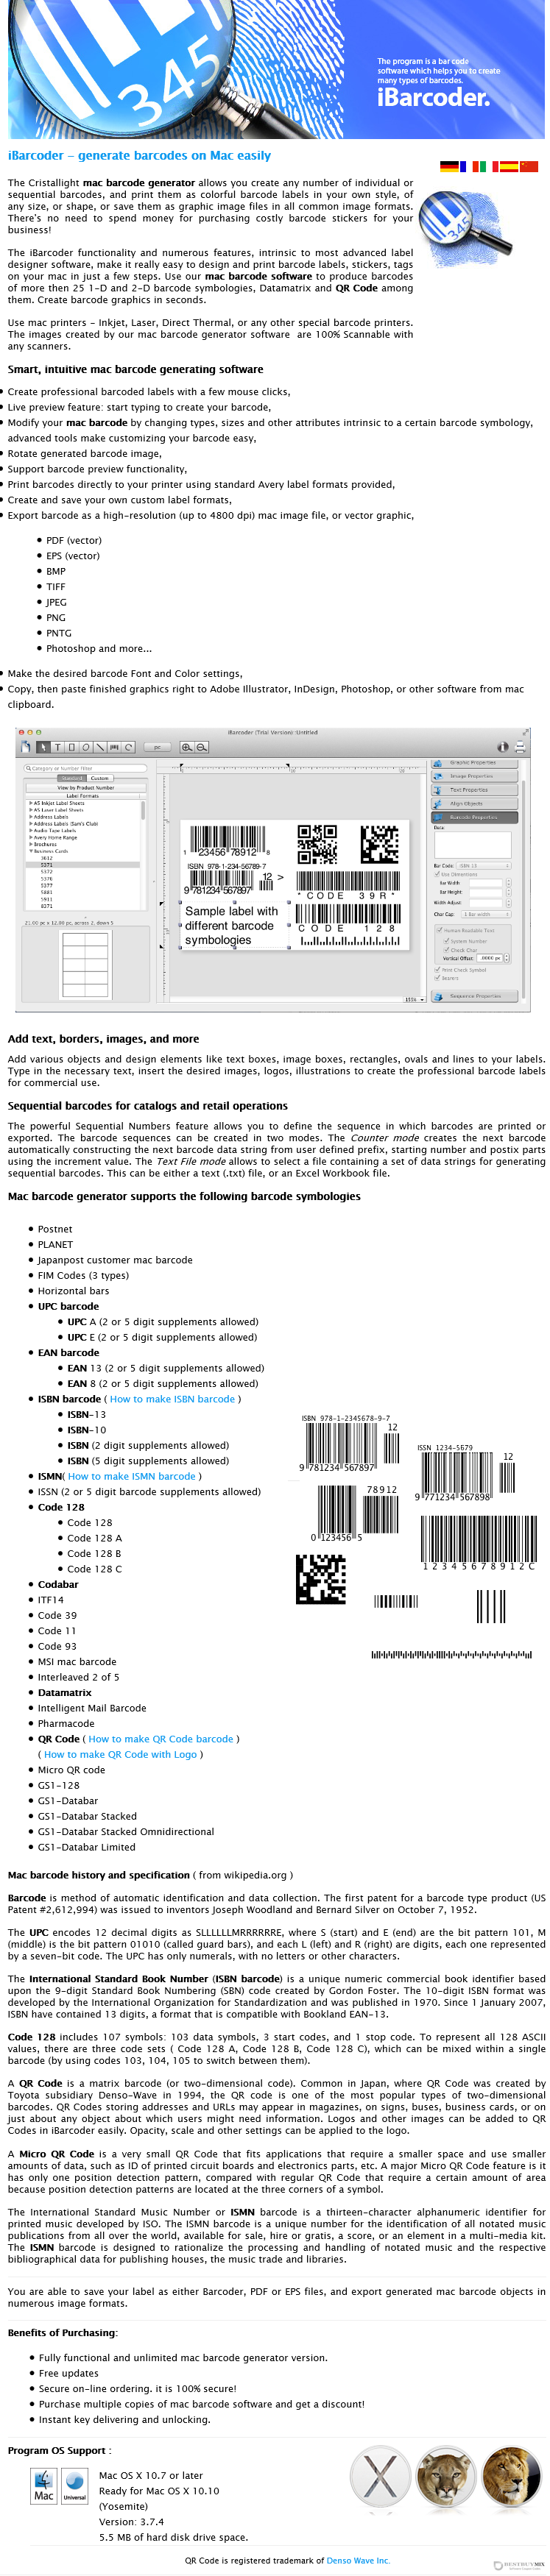 20% Off - iBarcoder - Mac Barcode Generator with Discount Coupon code